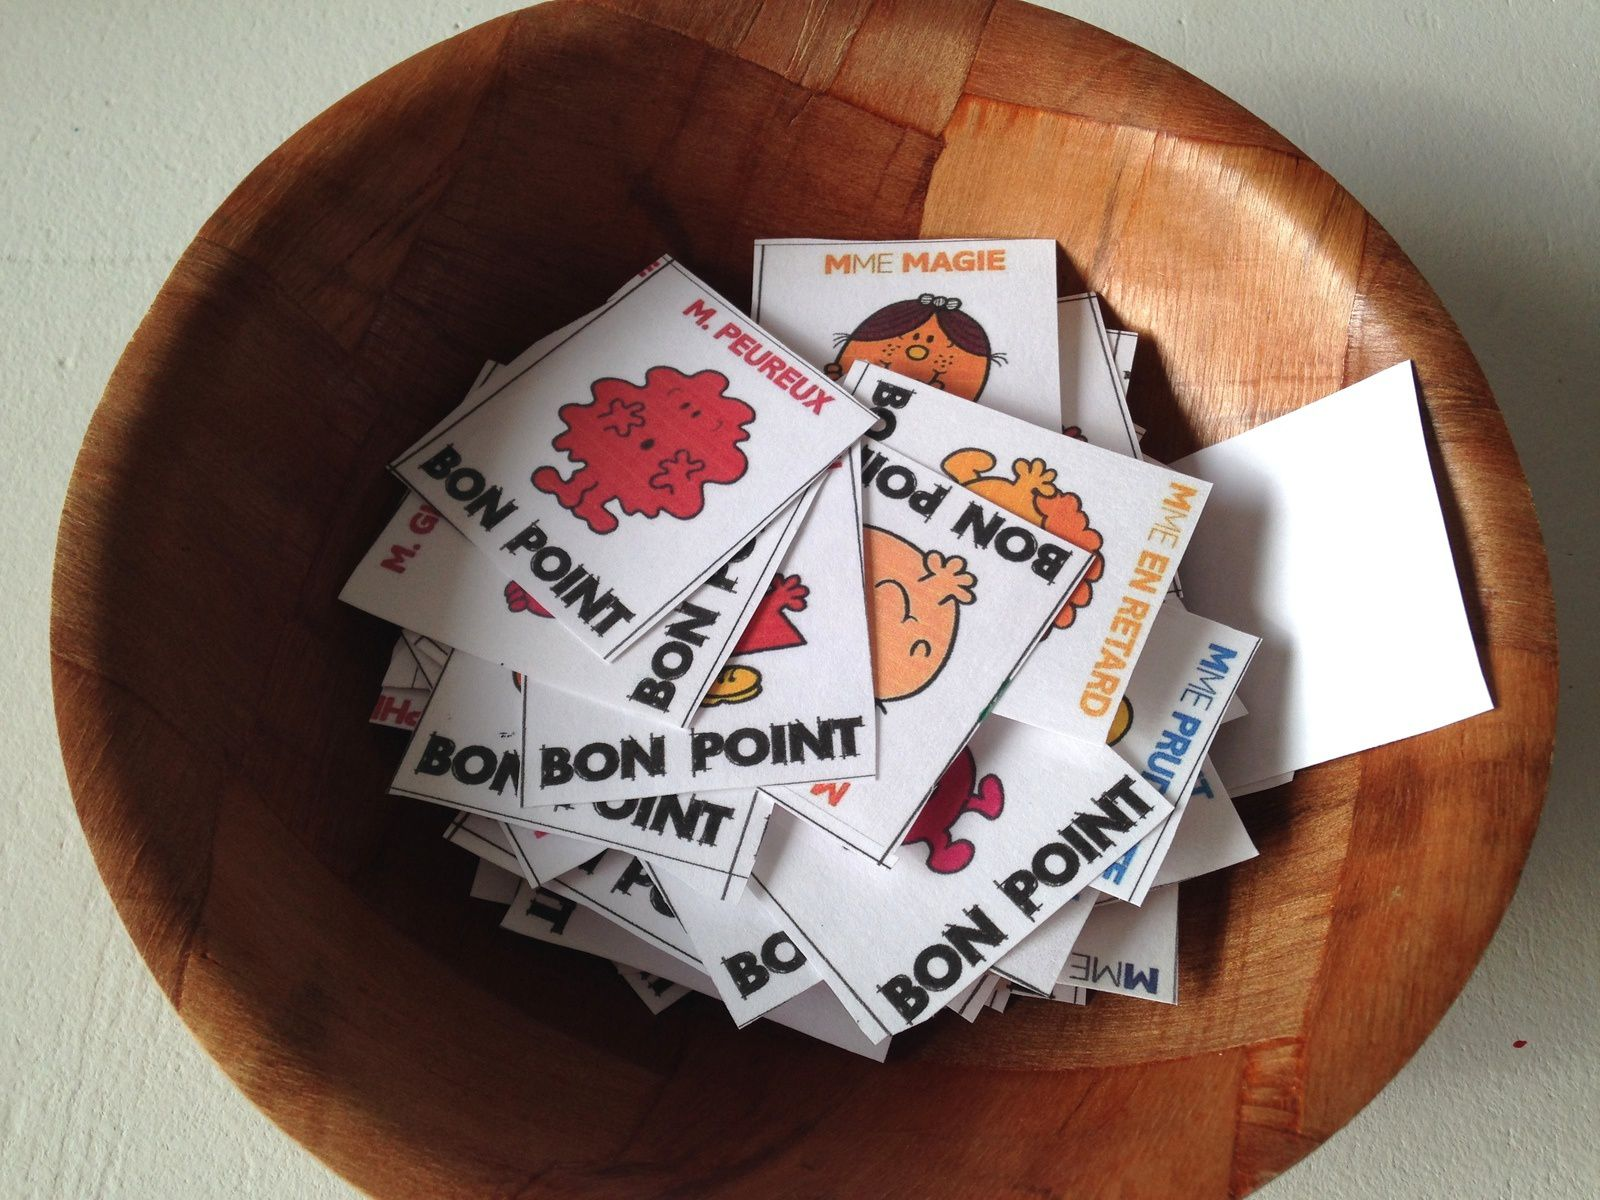 #Mr&Mme #bonspoints #récompence enfants #charlotteblabla blog